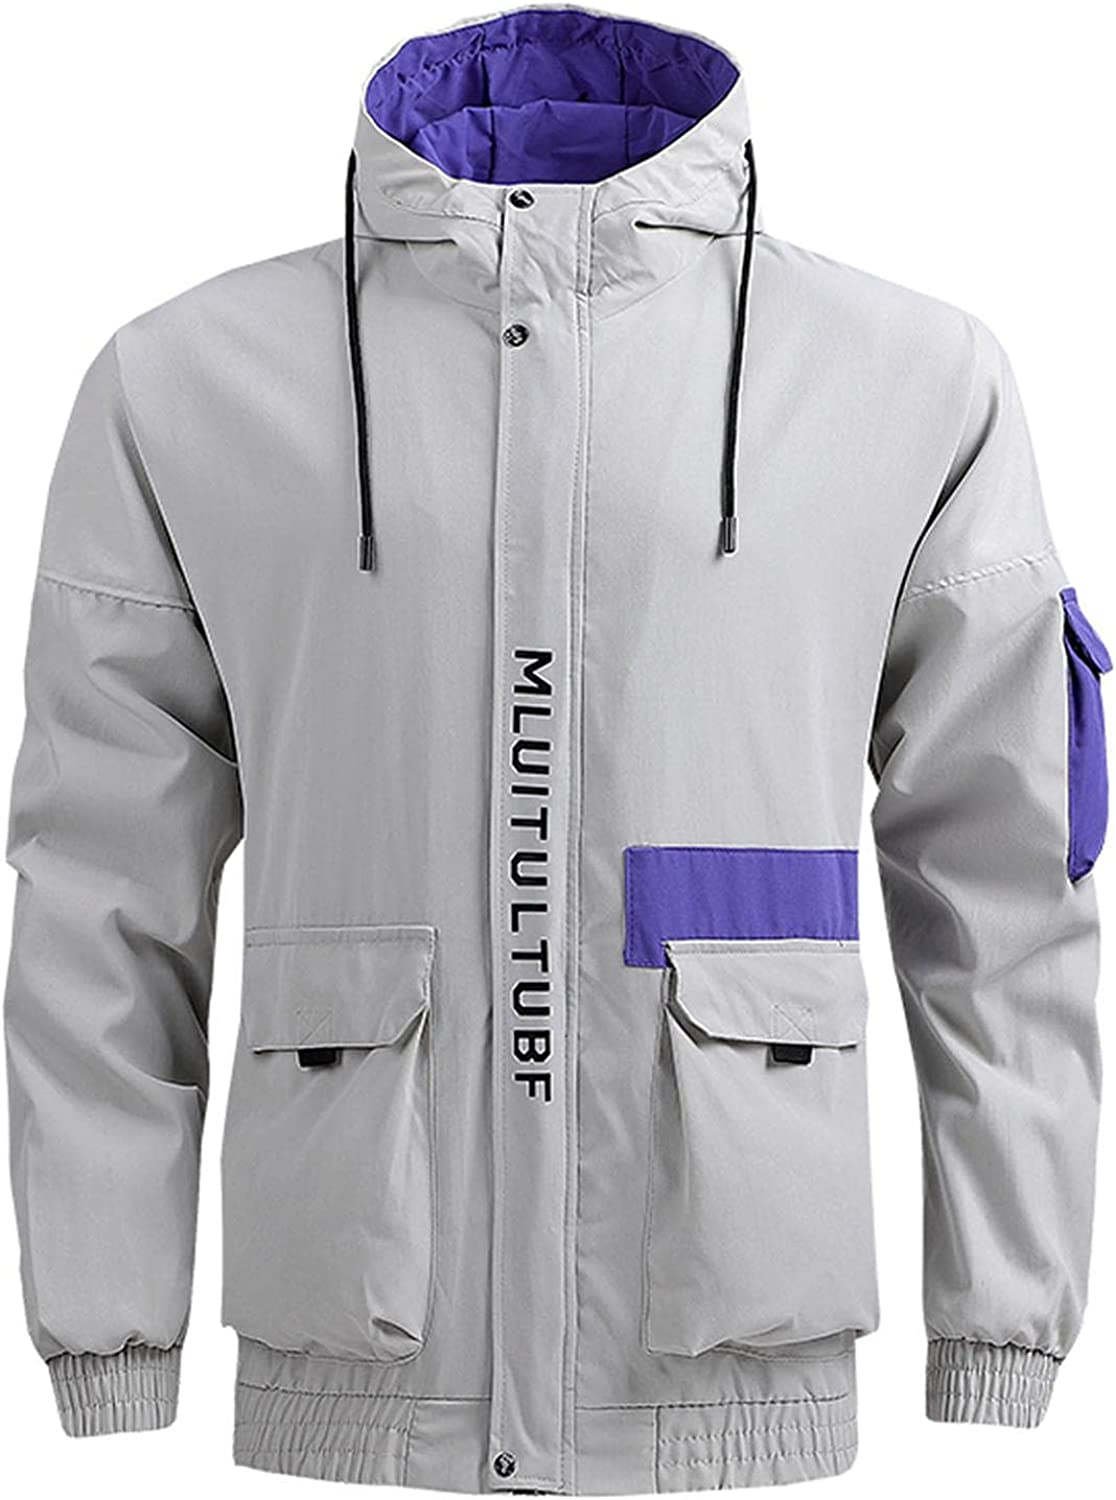 FUNEY Men's Casual Outdoor Raincoat Shell Jacket Lightweight Hooded Hiking Travel Shirts Jackets with Multi-Pockets